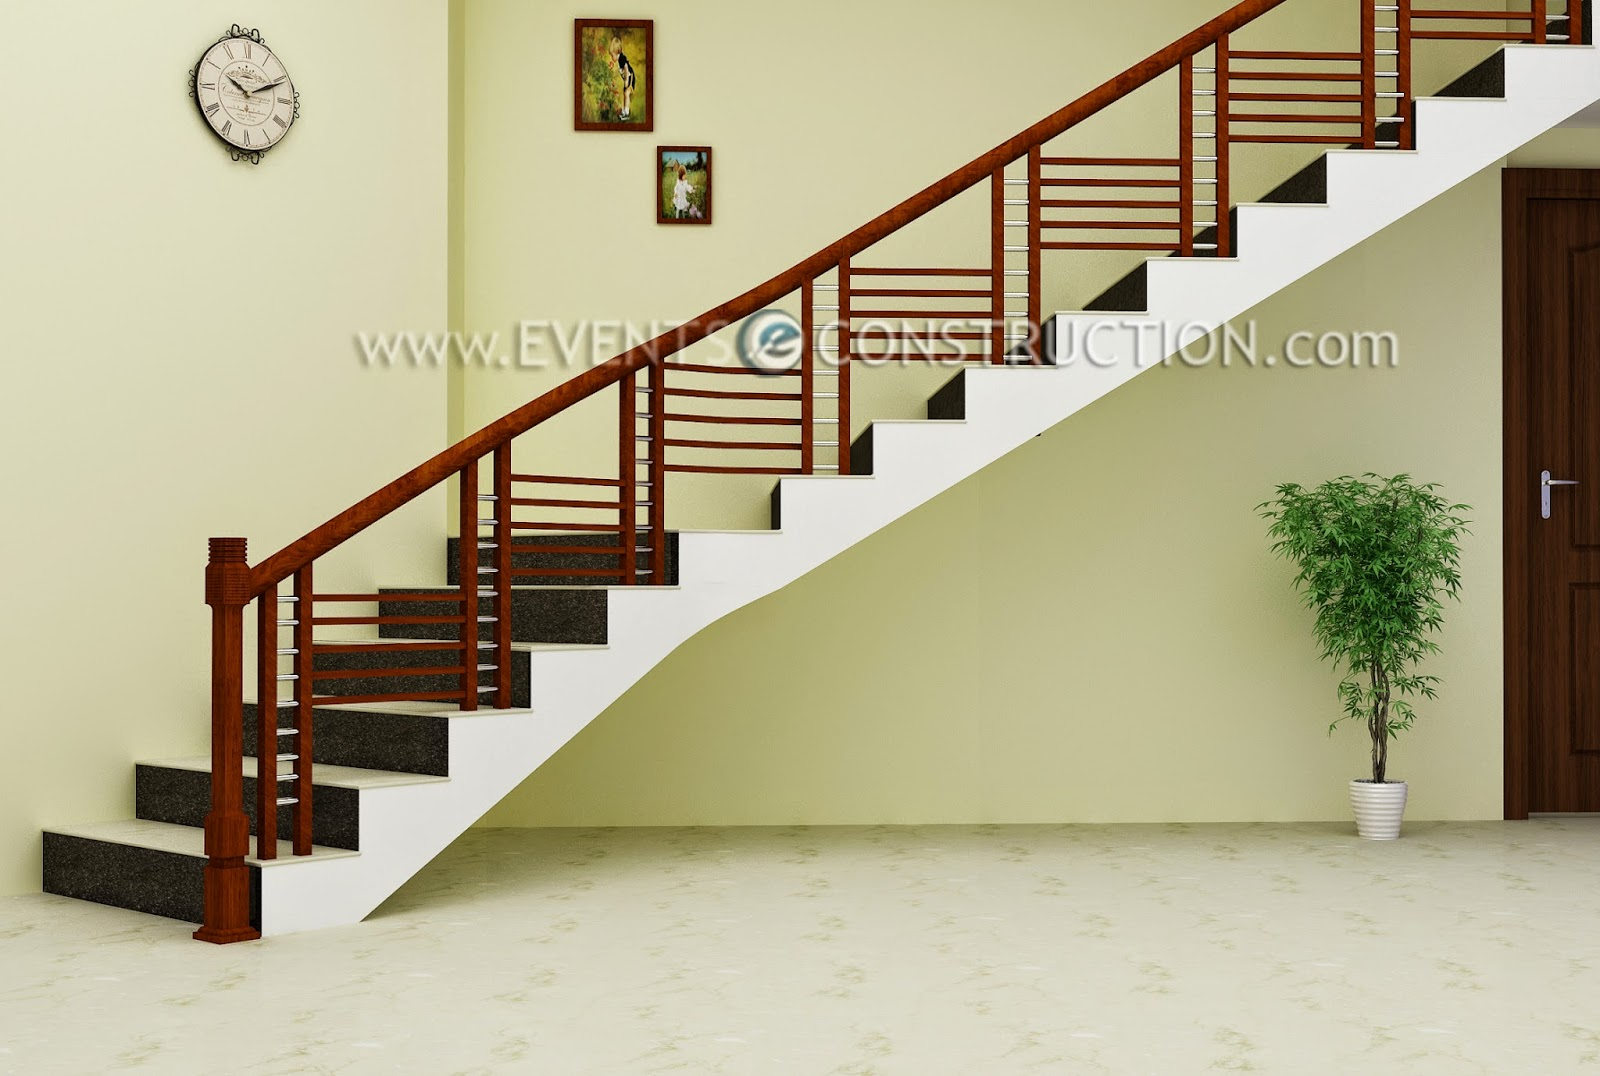 Evens construction pvt ltd simple wooden staircase design - Staircase designs ...